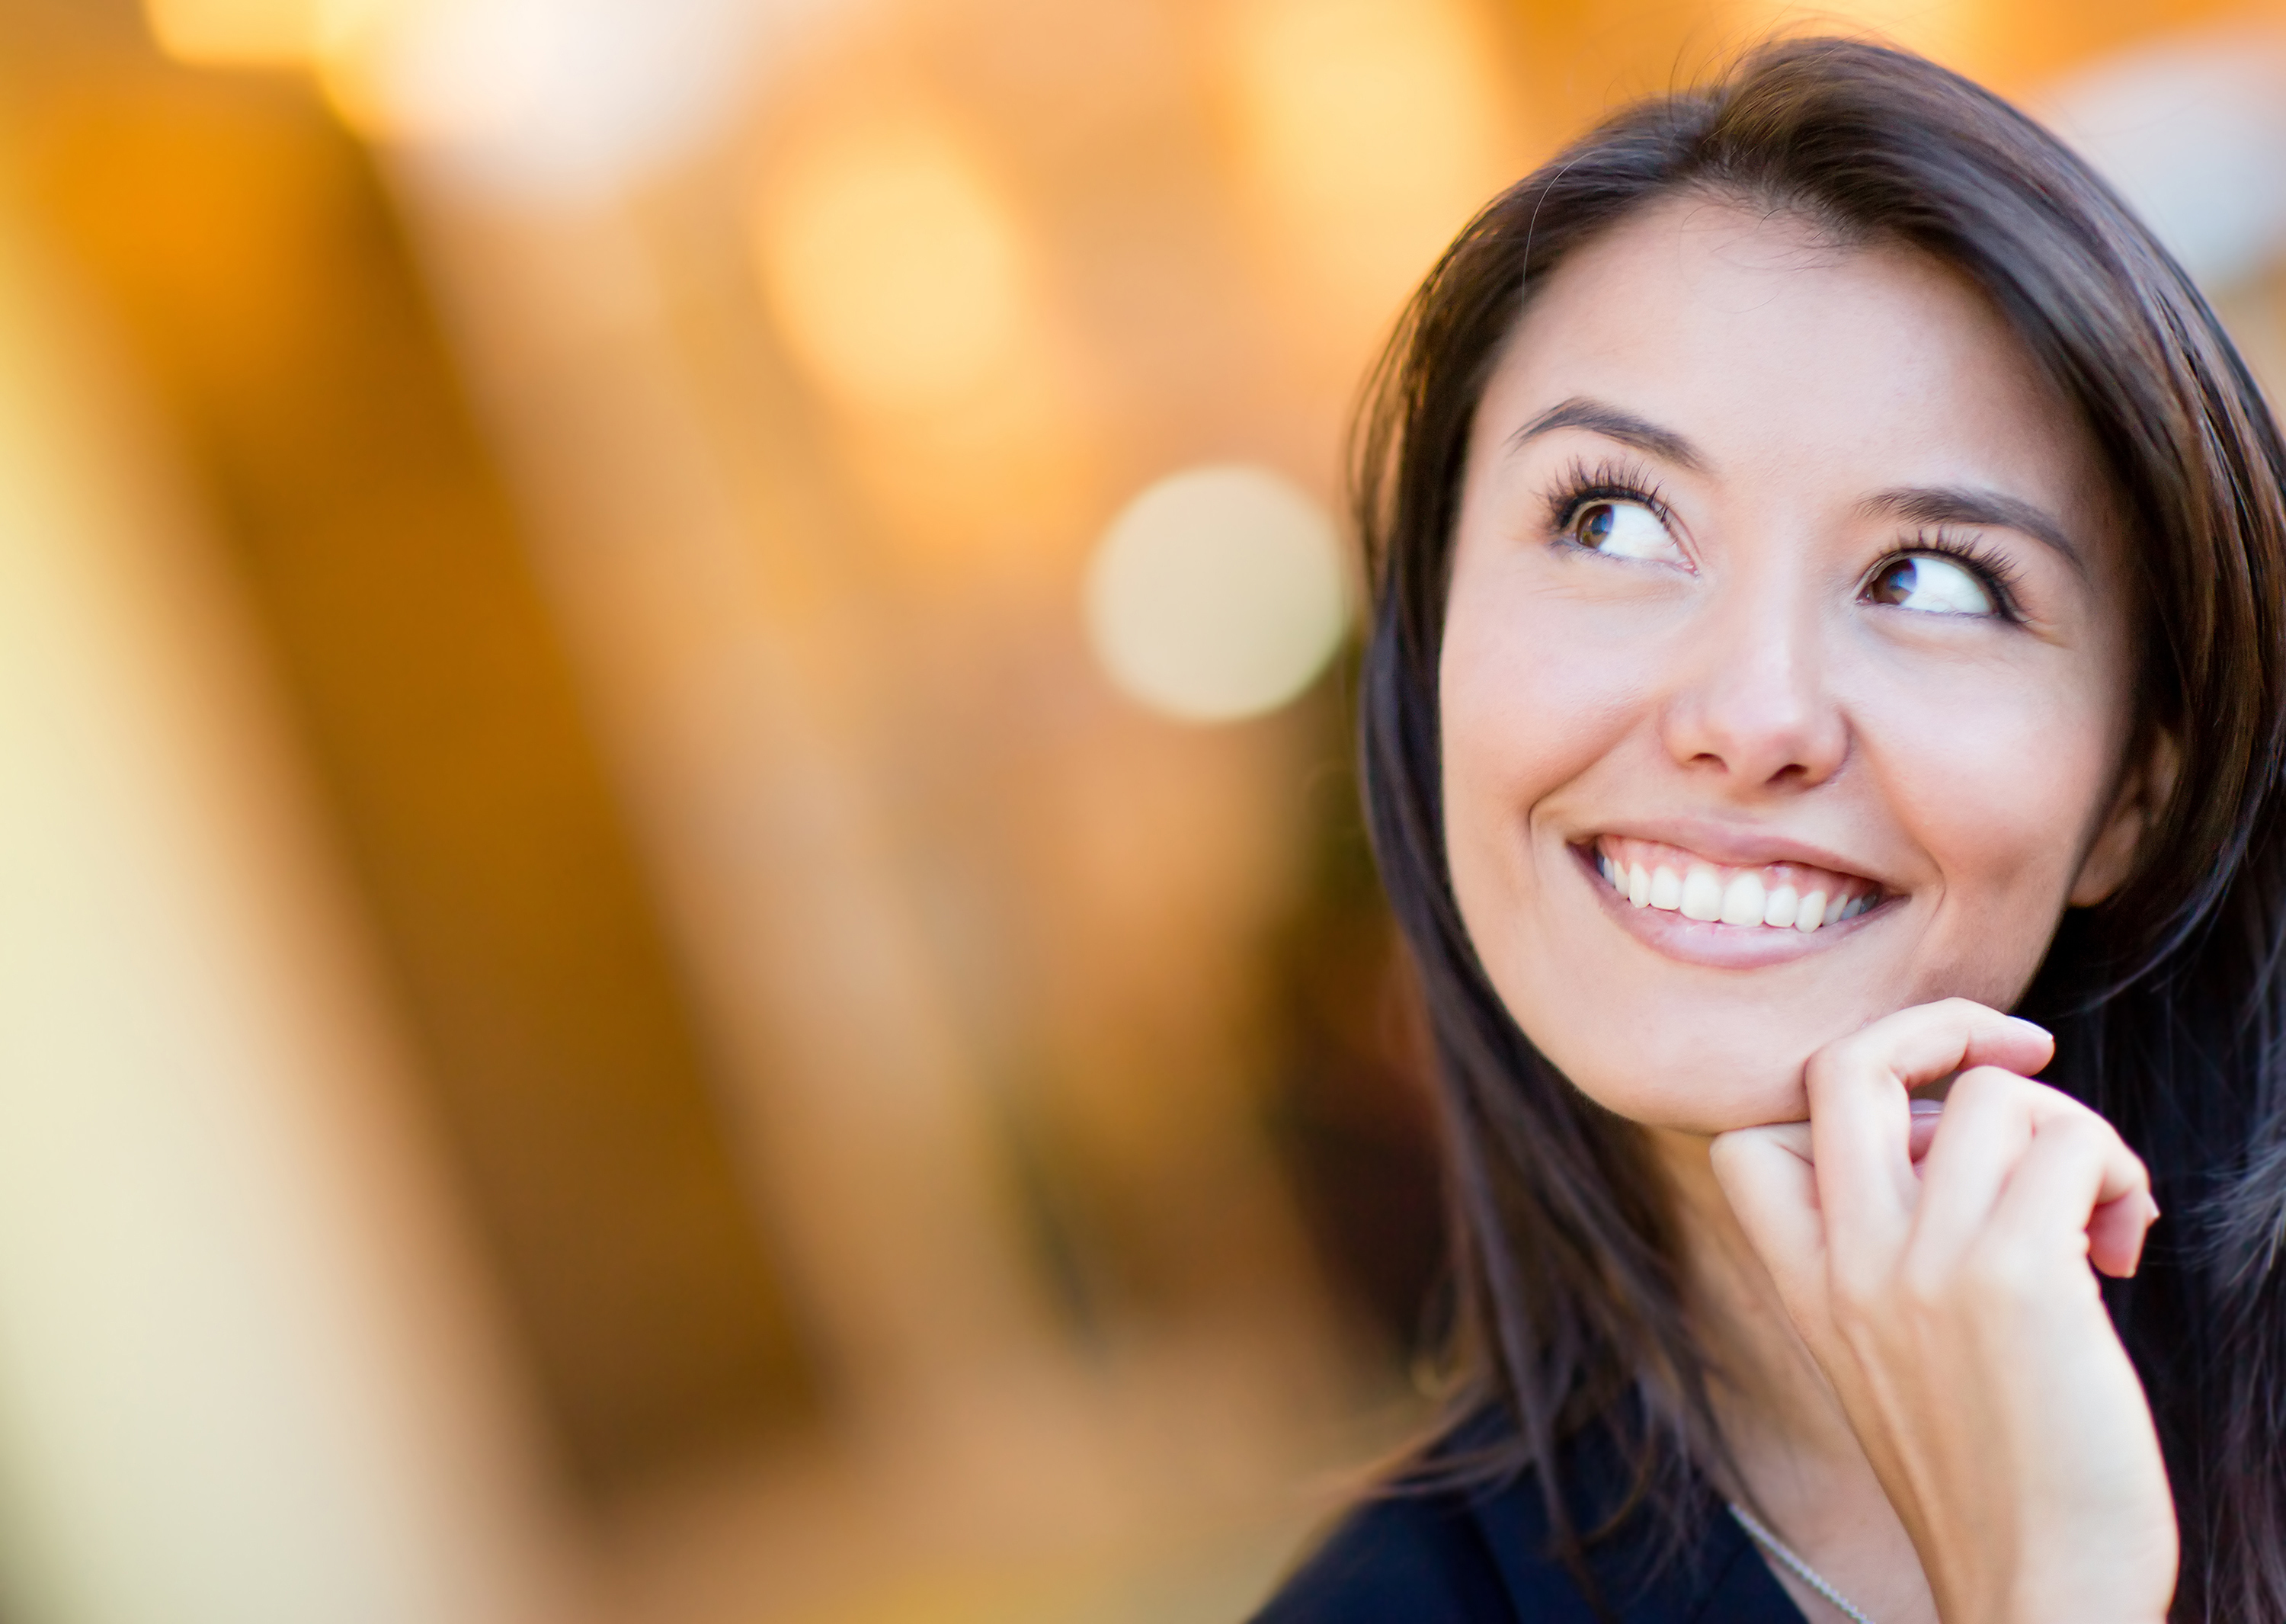 5 Ways To Make Yourself Happier In The Next 5 Minutes  Psychology Today